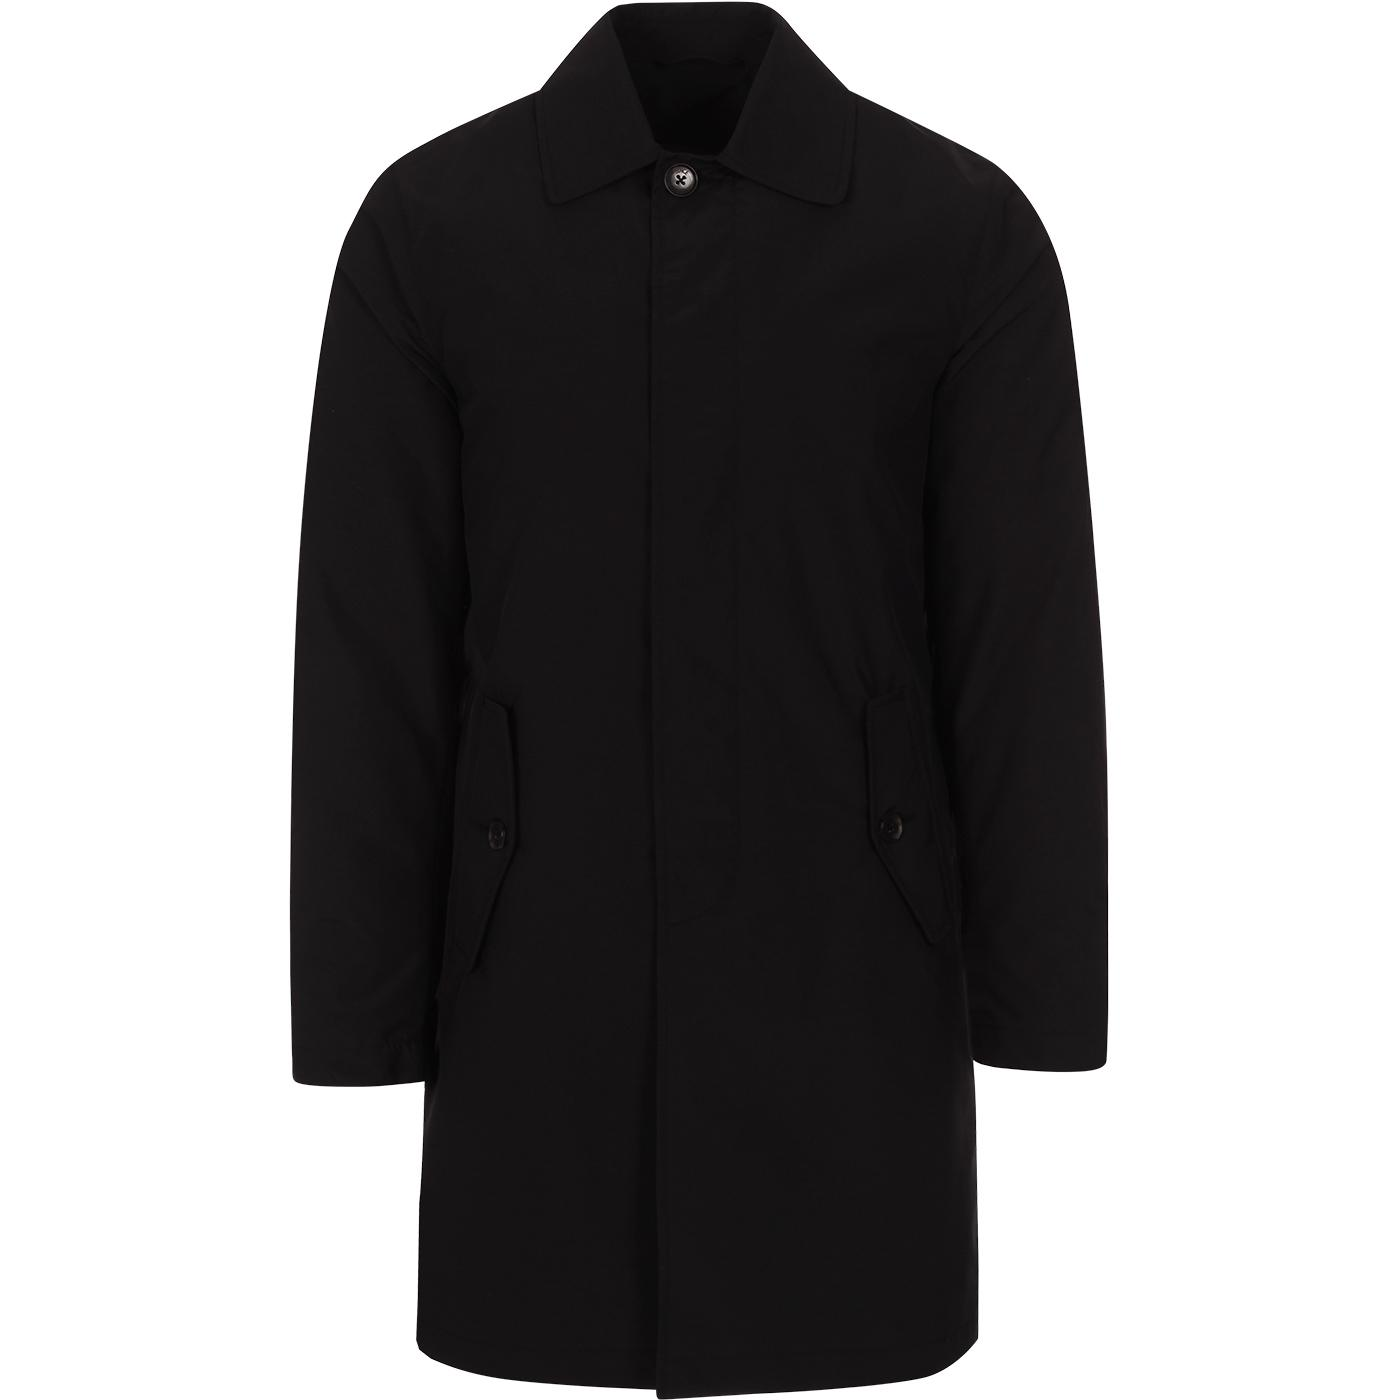 BARACUTA G10 Detachable Lining Raincoat (Black)